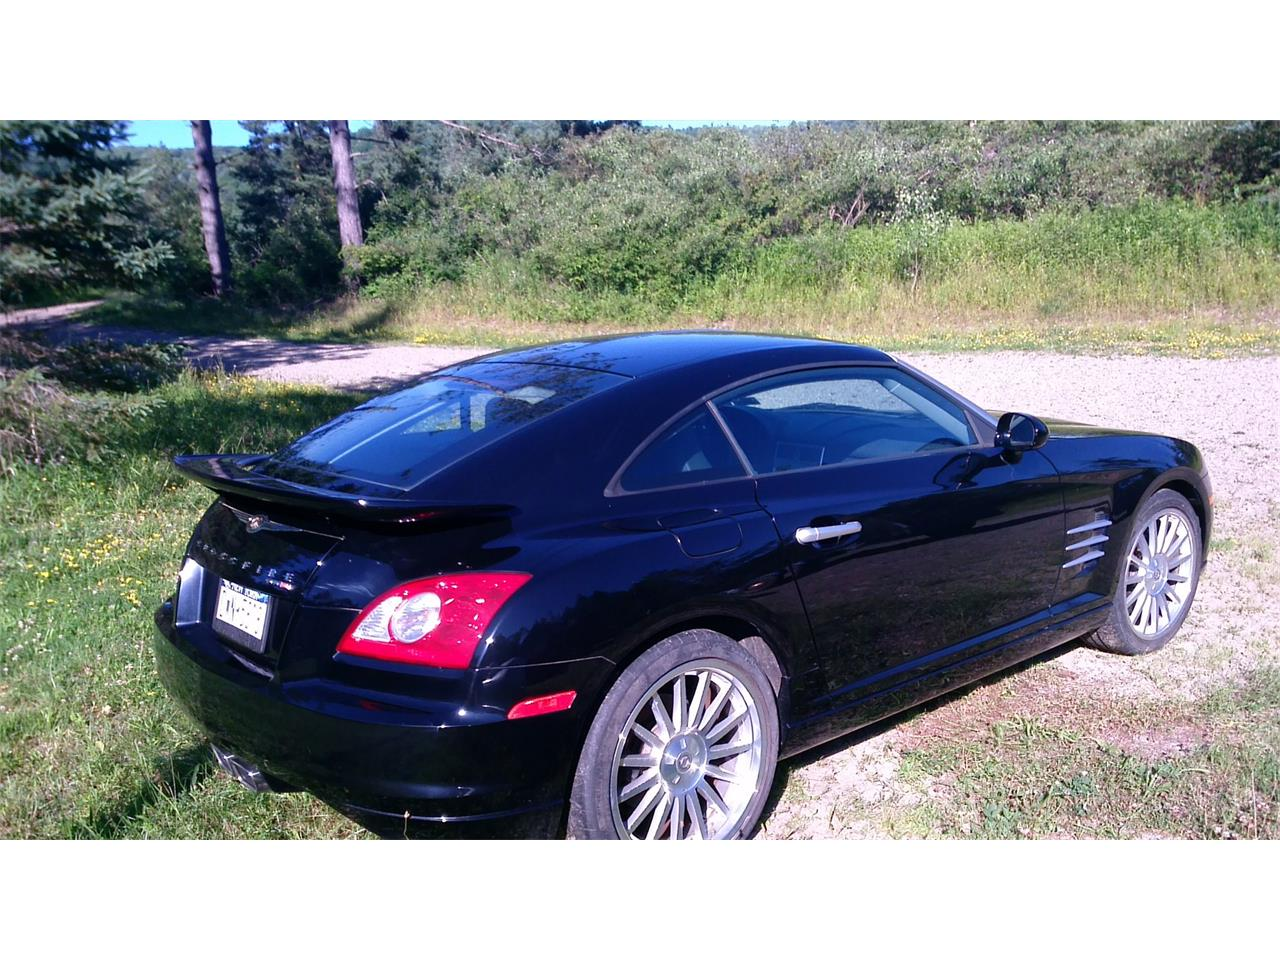 Large Picture of '05 Chrysler Crossfire located in Portville New York - NR5M